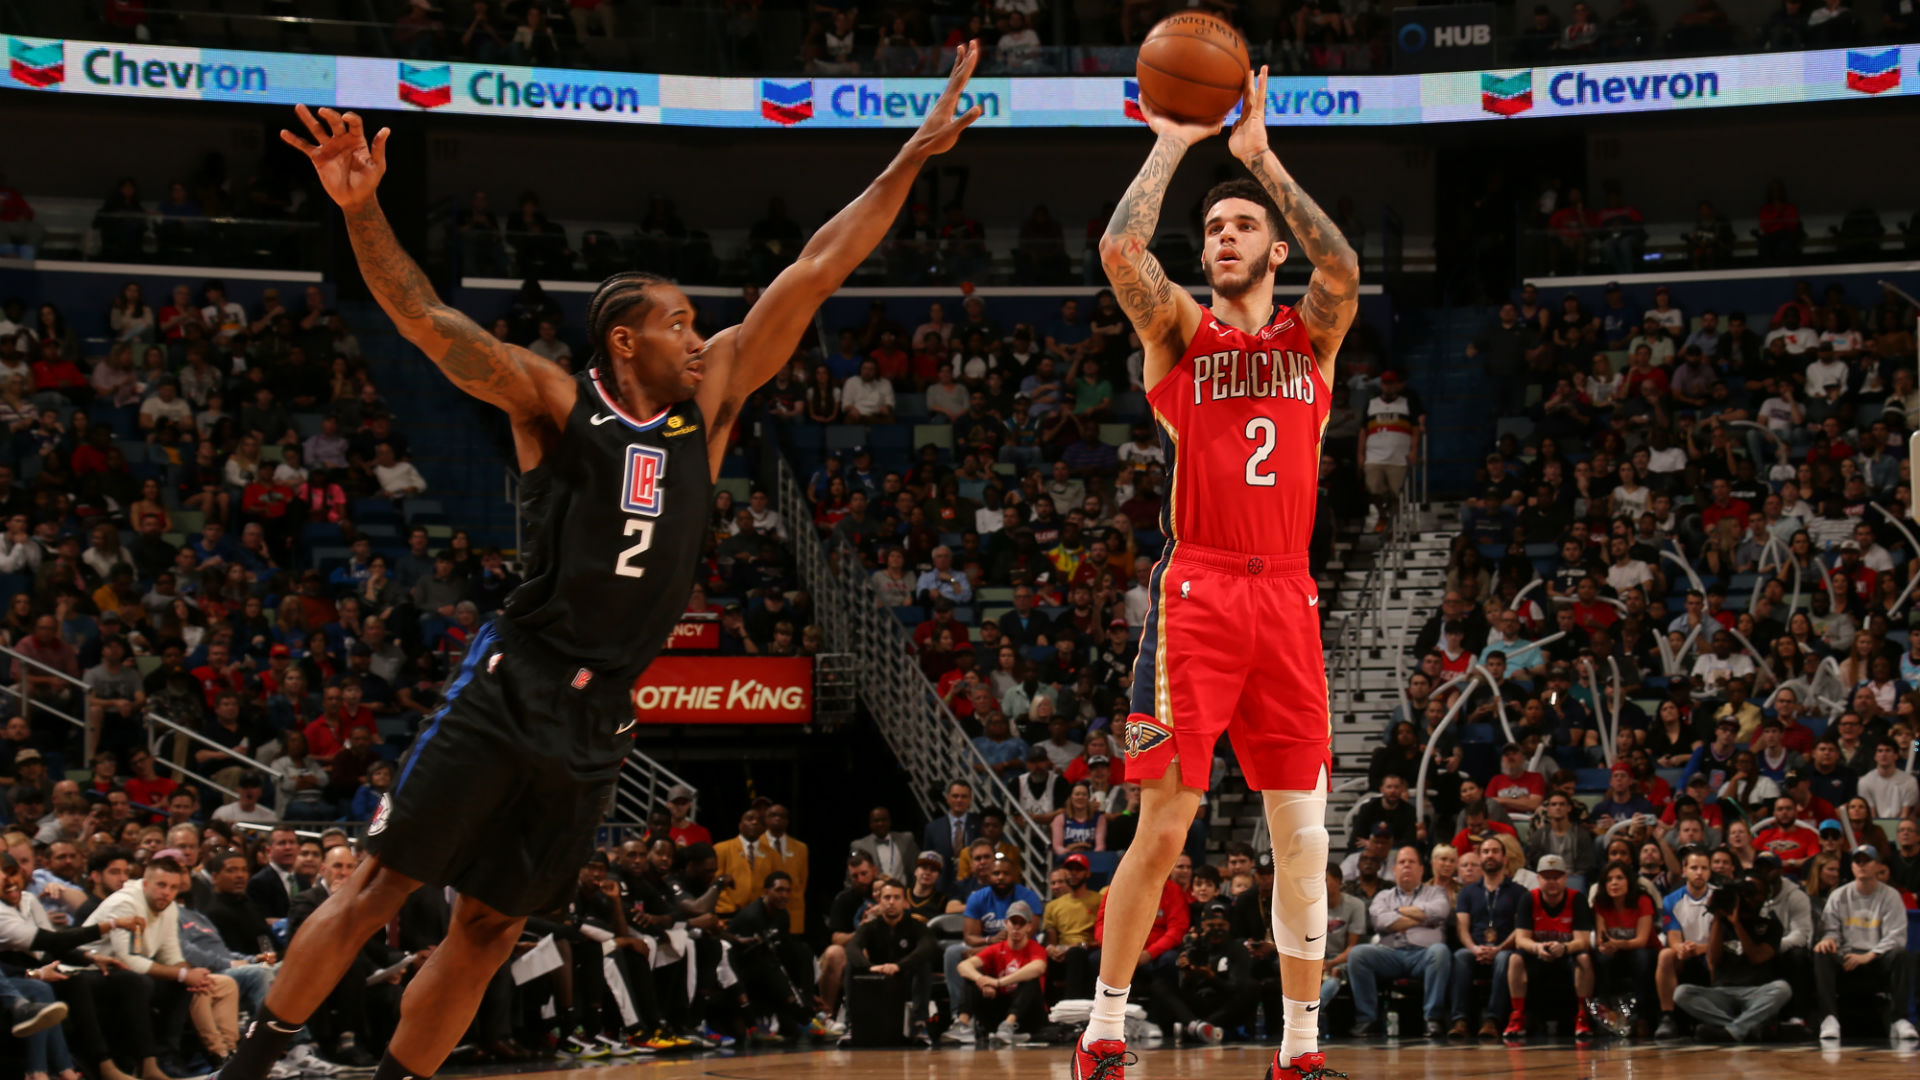 Clippers @ Pelicans